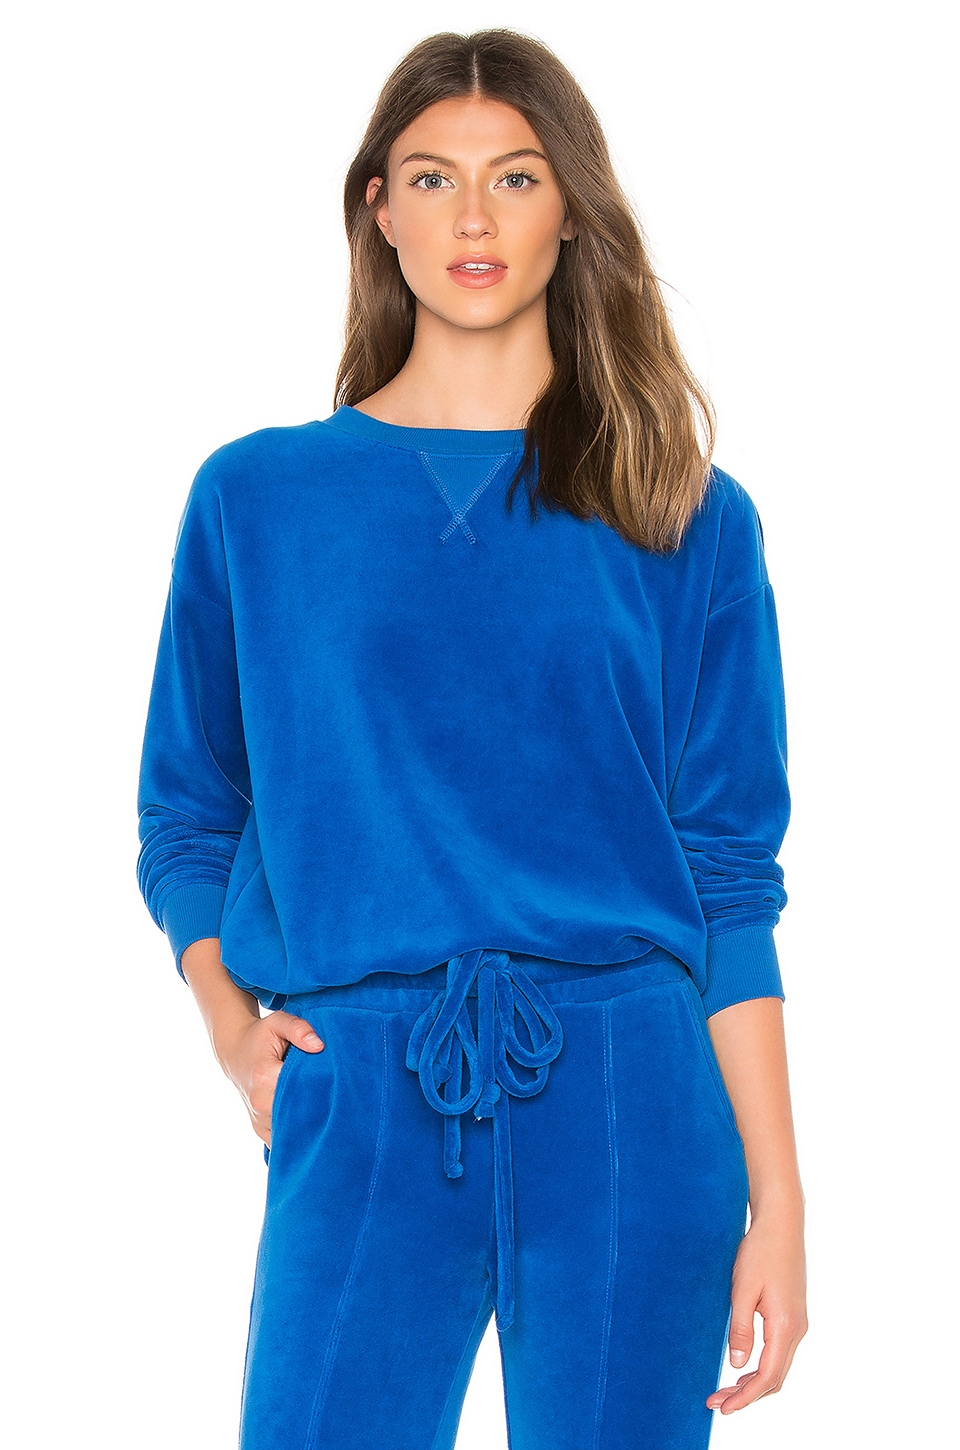 YEAR OF OURS Velour Stephanie Sweatshirt in Royal